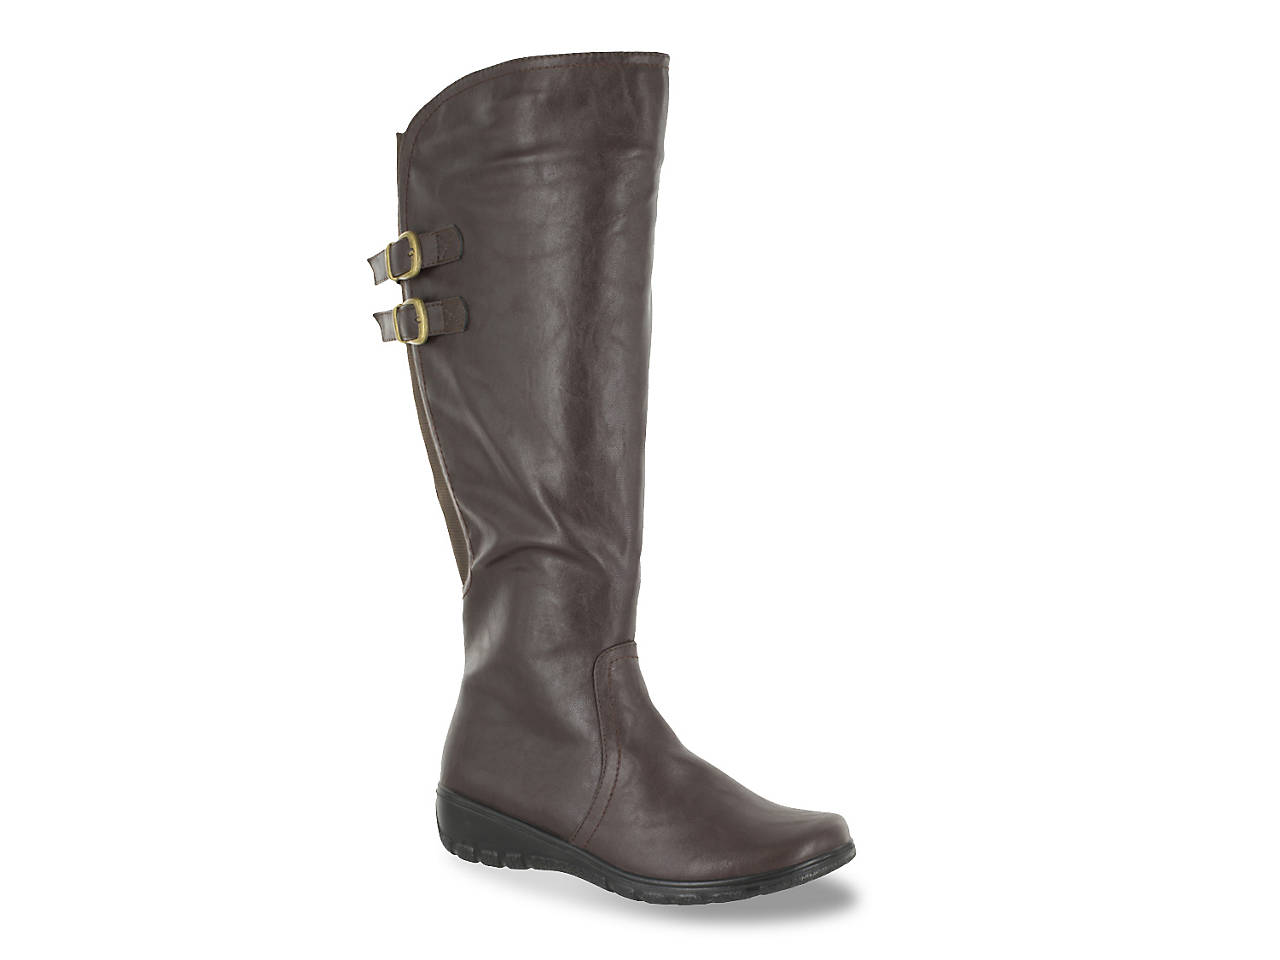 f0a1ccf36a8 Easy Street Tess Plus Wide Calf Riding Boot Women s Shoes